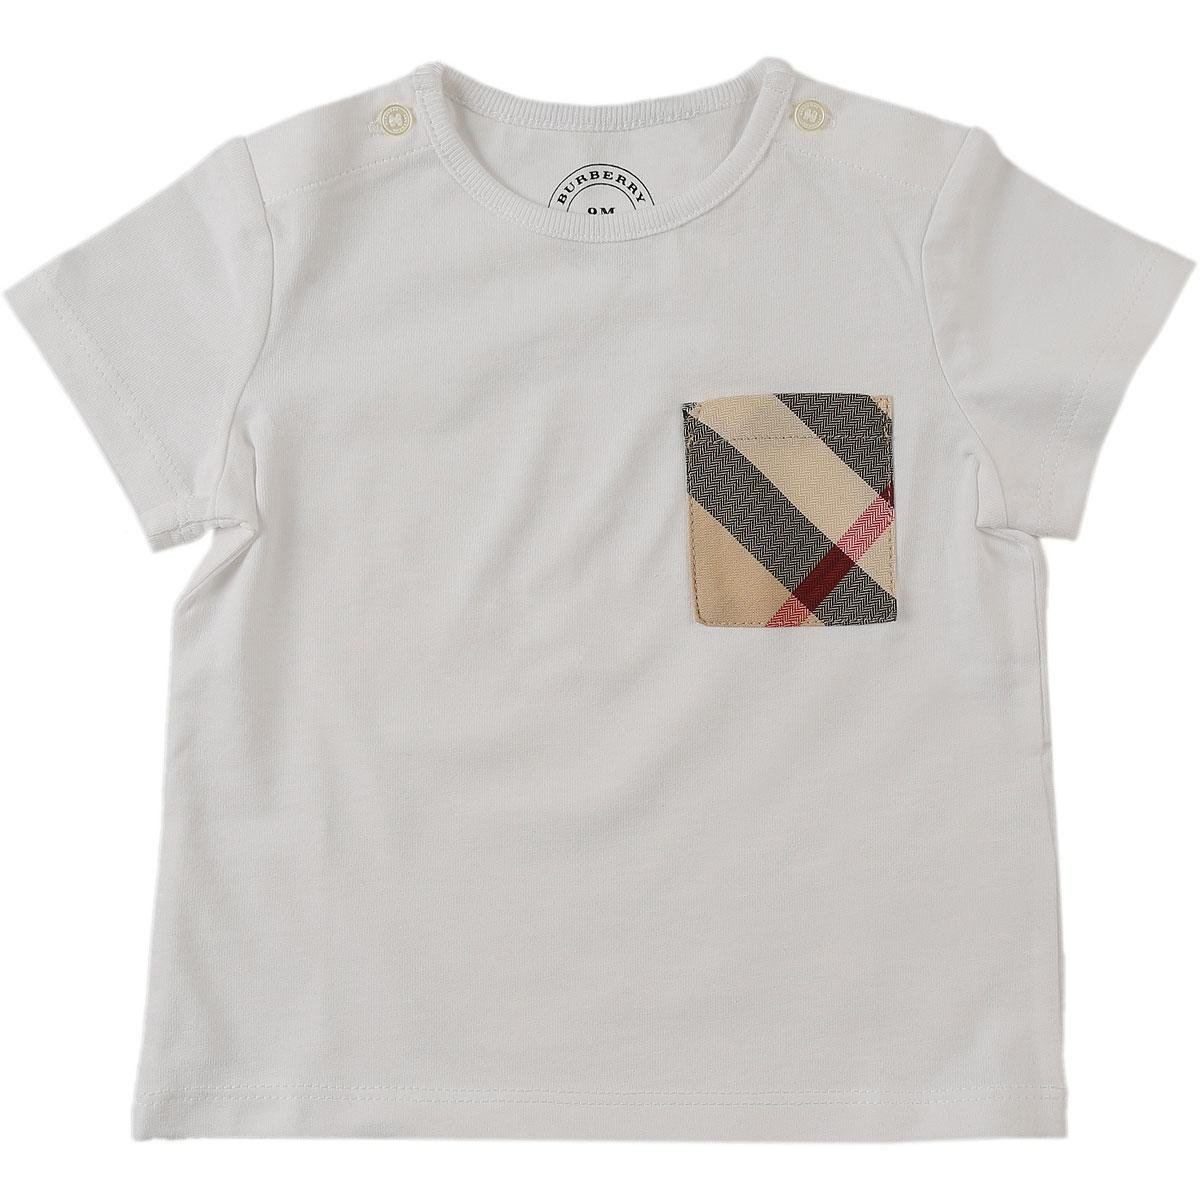 8e021e47ac7ee Lyst - Burberry Baby T-shirt For Boys in White for Men